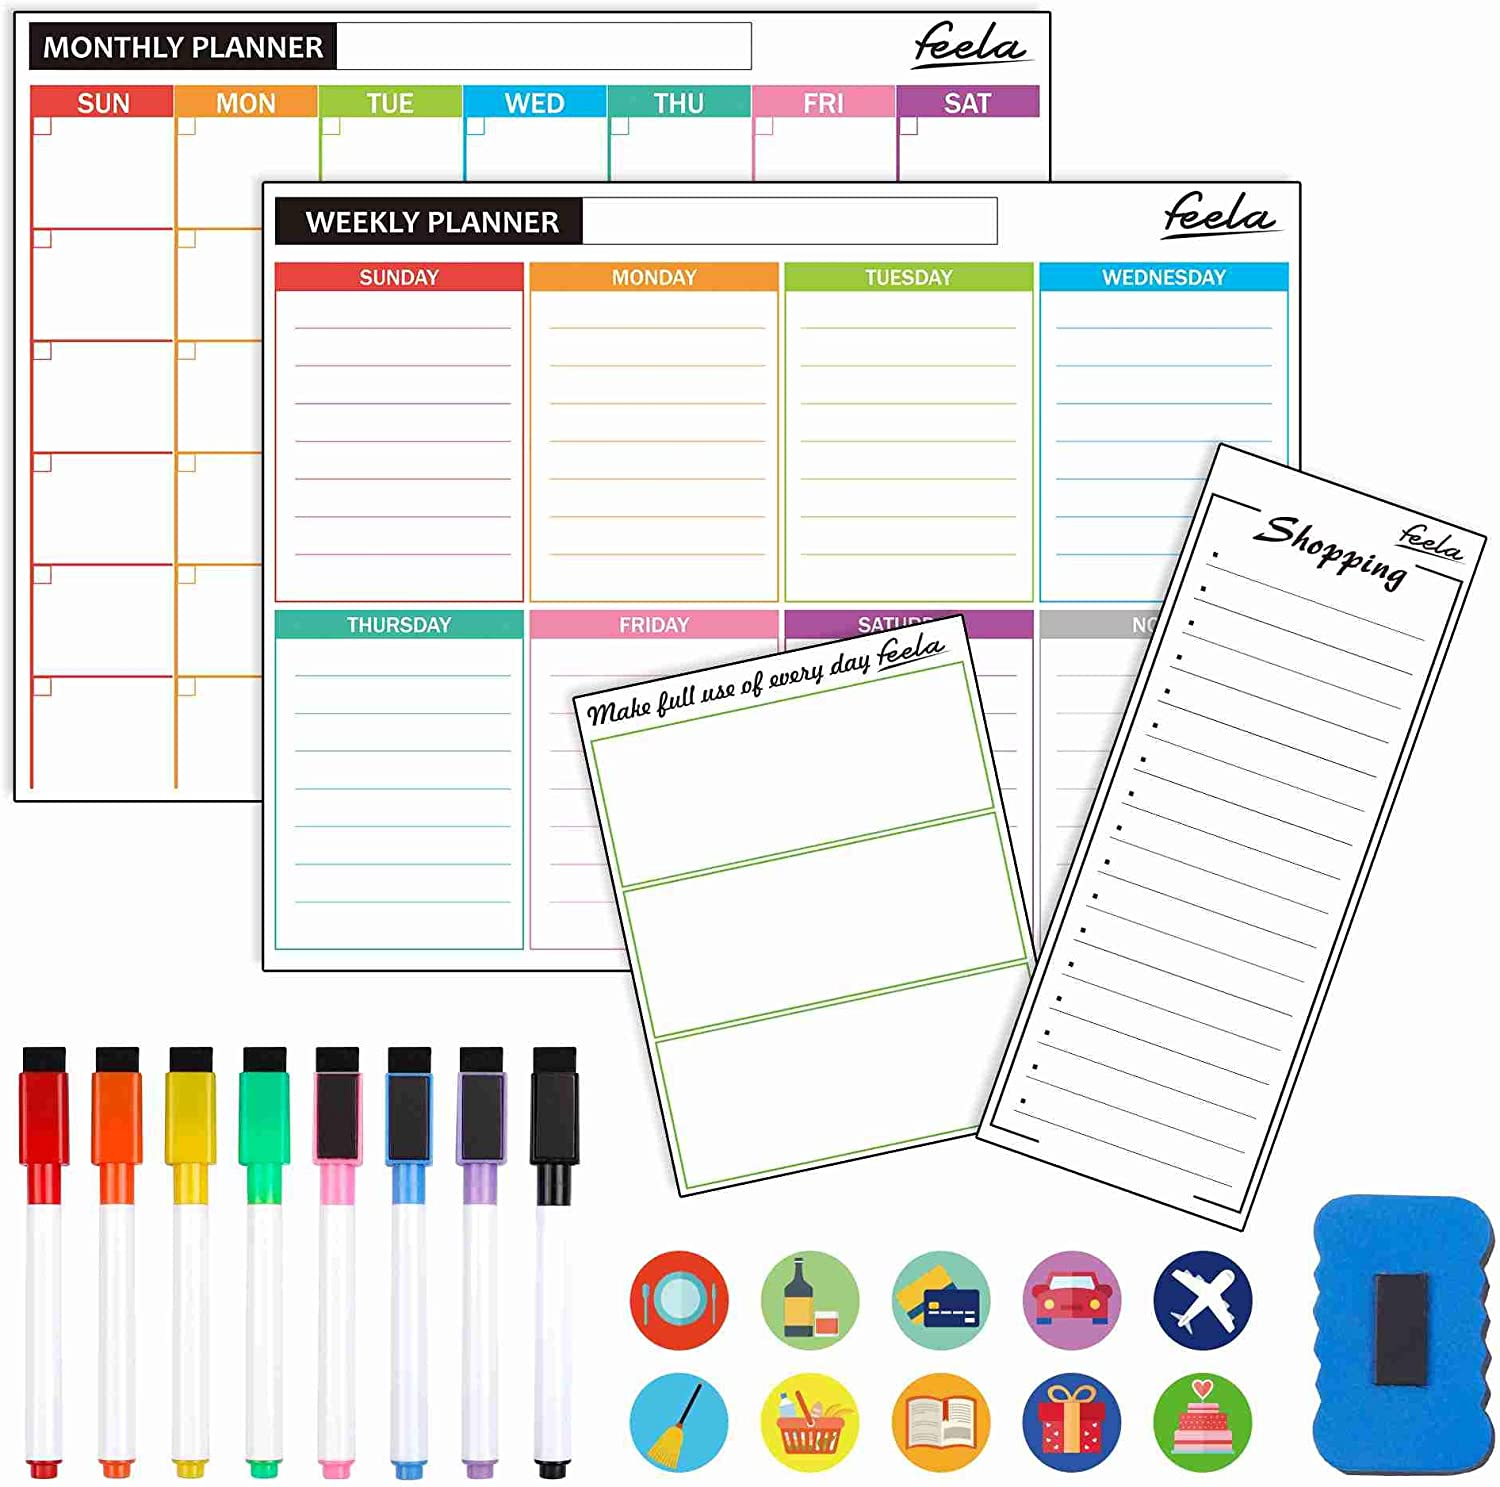 4 Pack Dry Erase Magnetic White Board Calendar Kit, Feela 2020 Monthly Weekly Calendar for Wall Refrigerator, Office Supplies with 8 Magnetic Erase Markers, 1 Eraser, 10 Stickers for Schedule Planner